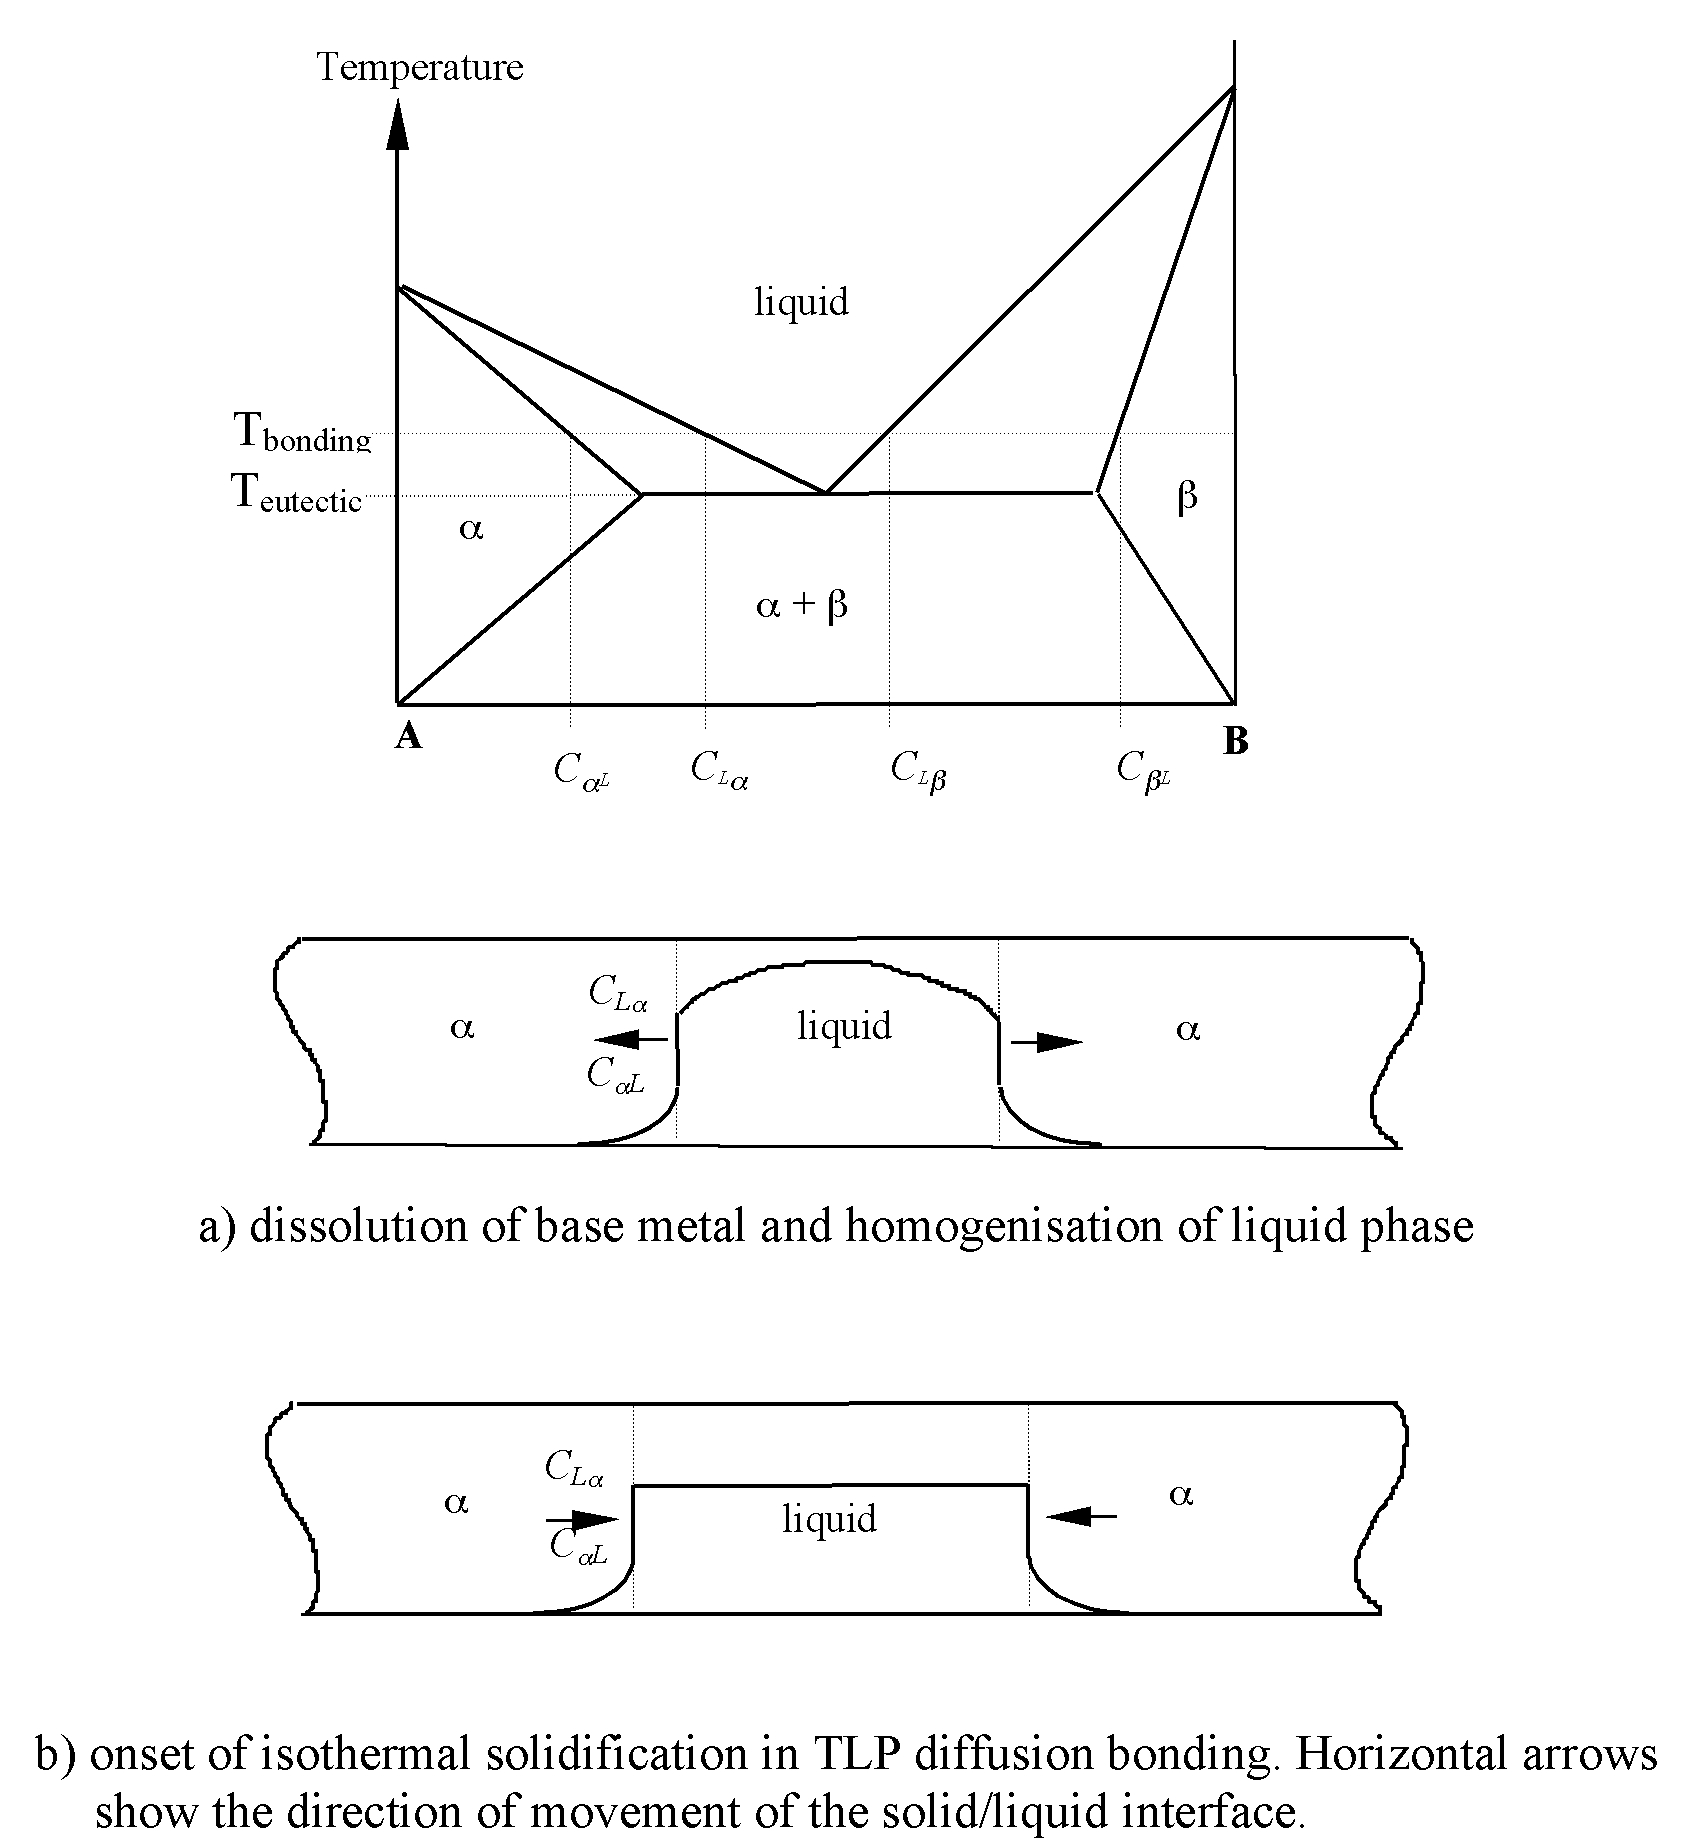 hight resolution of according to the phase diagram equilibrium in the liquid can be established by dissolution of a atoms into the supersaturated b rich liquid to decrease its